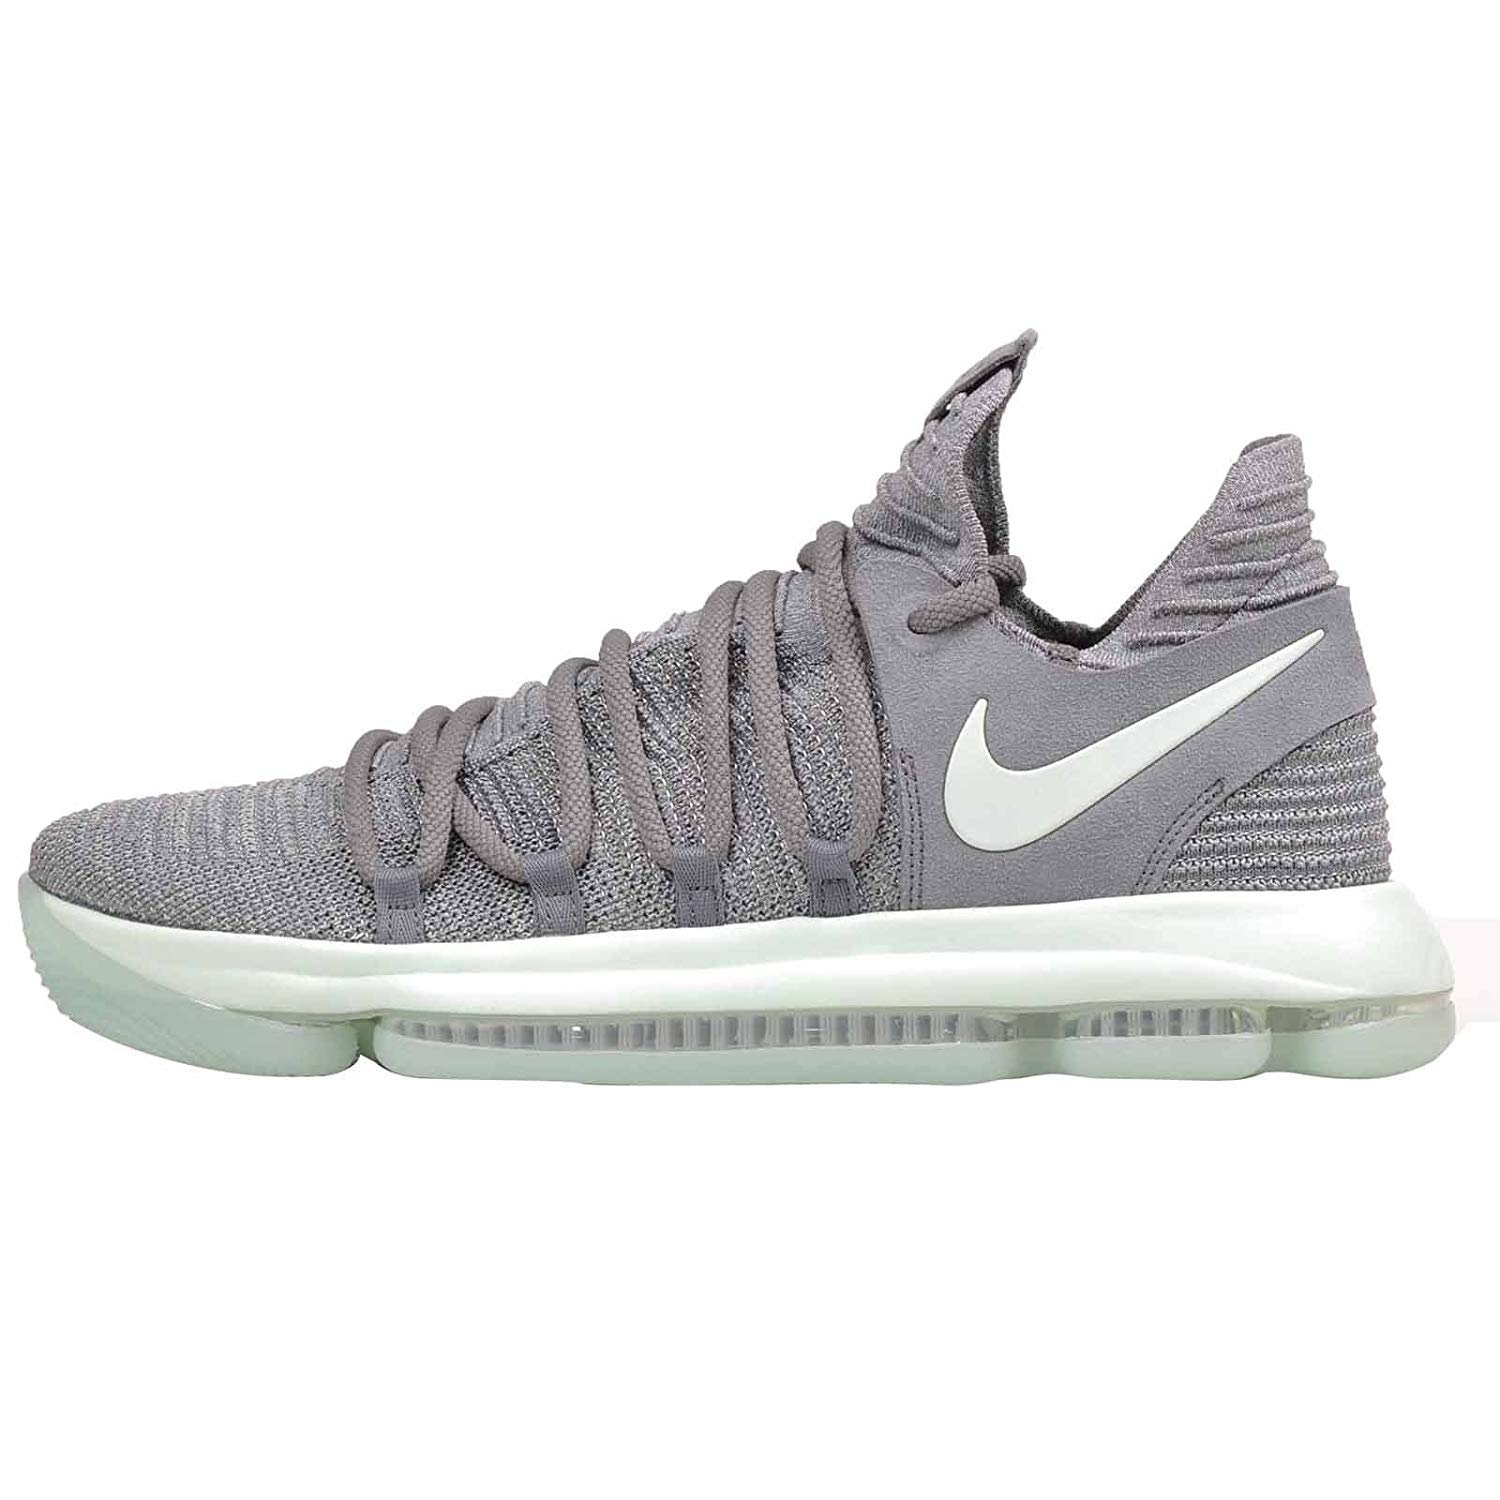 cheap for discount 09030 ae131 Nike Men's Zoom KD10, Cool Grey/Igloo-White: Amazon.co.uk ...